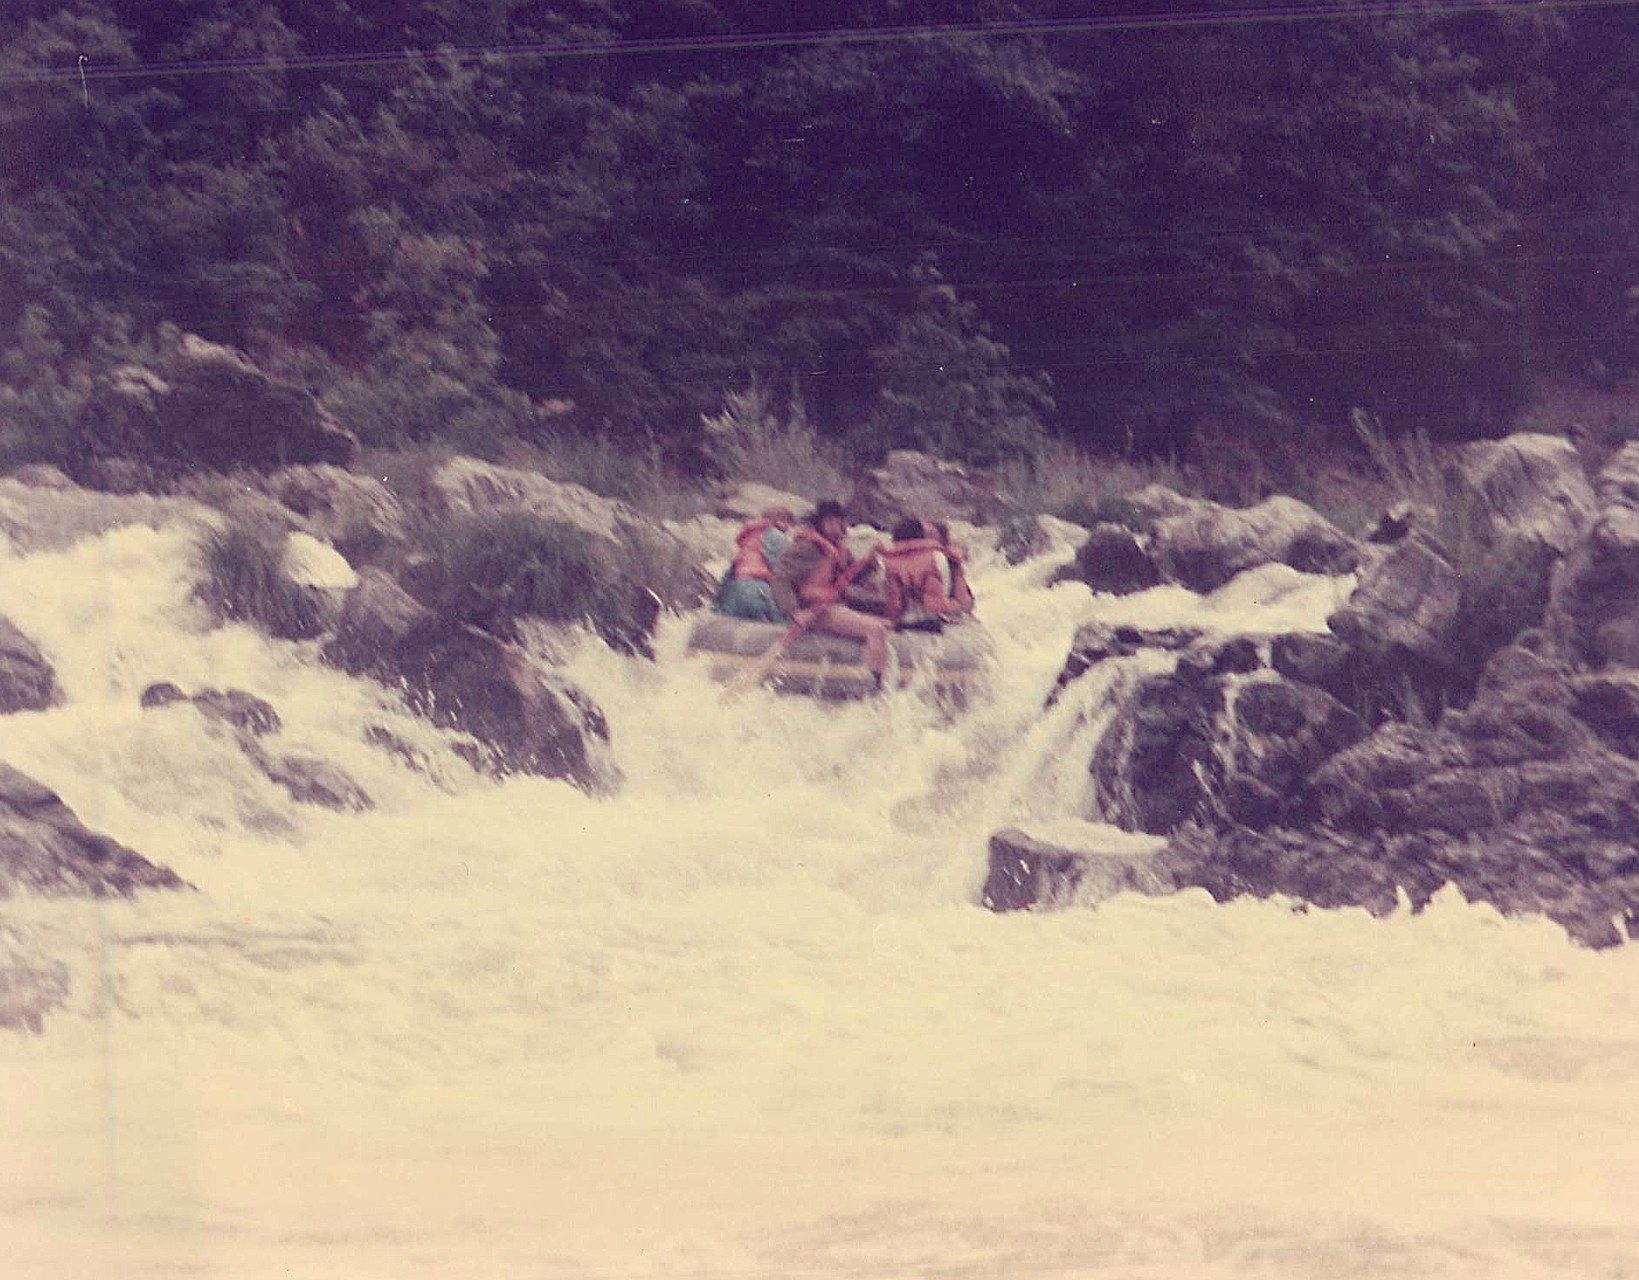 Reg Kelly, raft leader, guides his raft down backwards over Rainie Falls